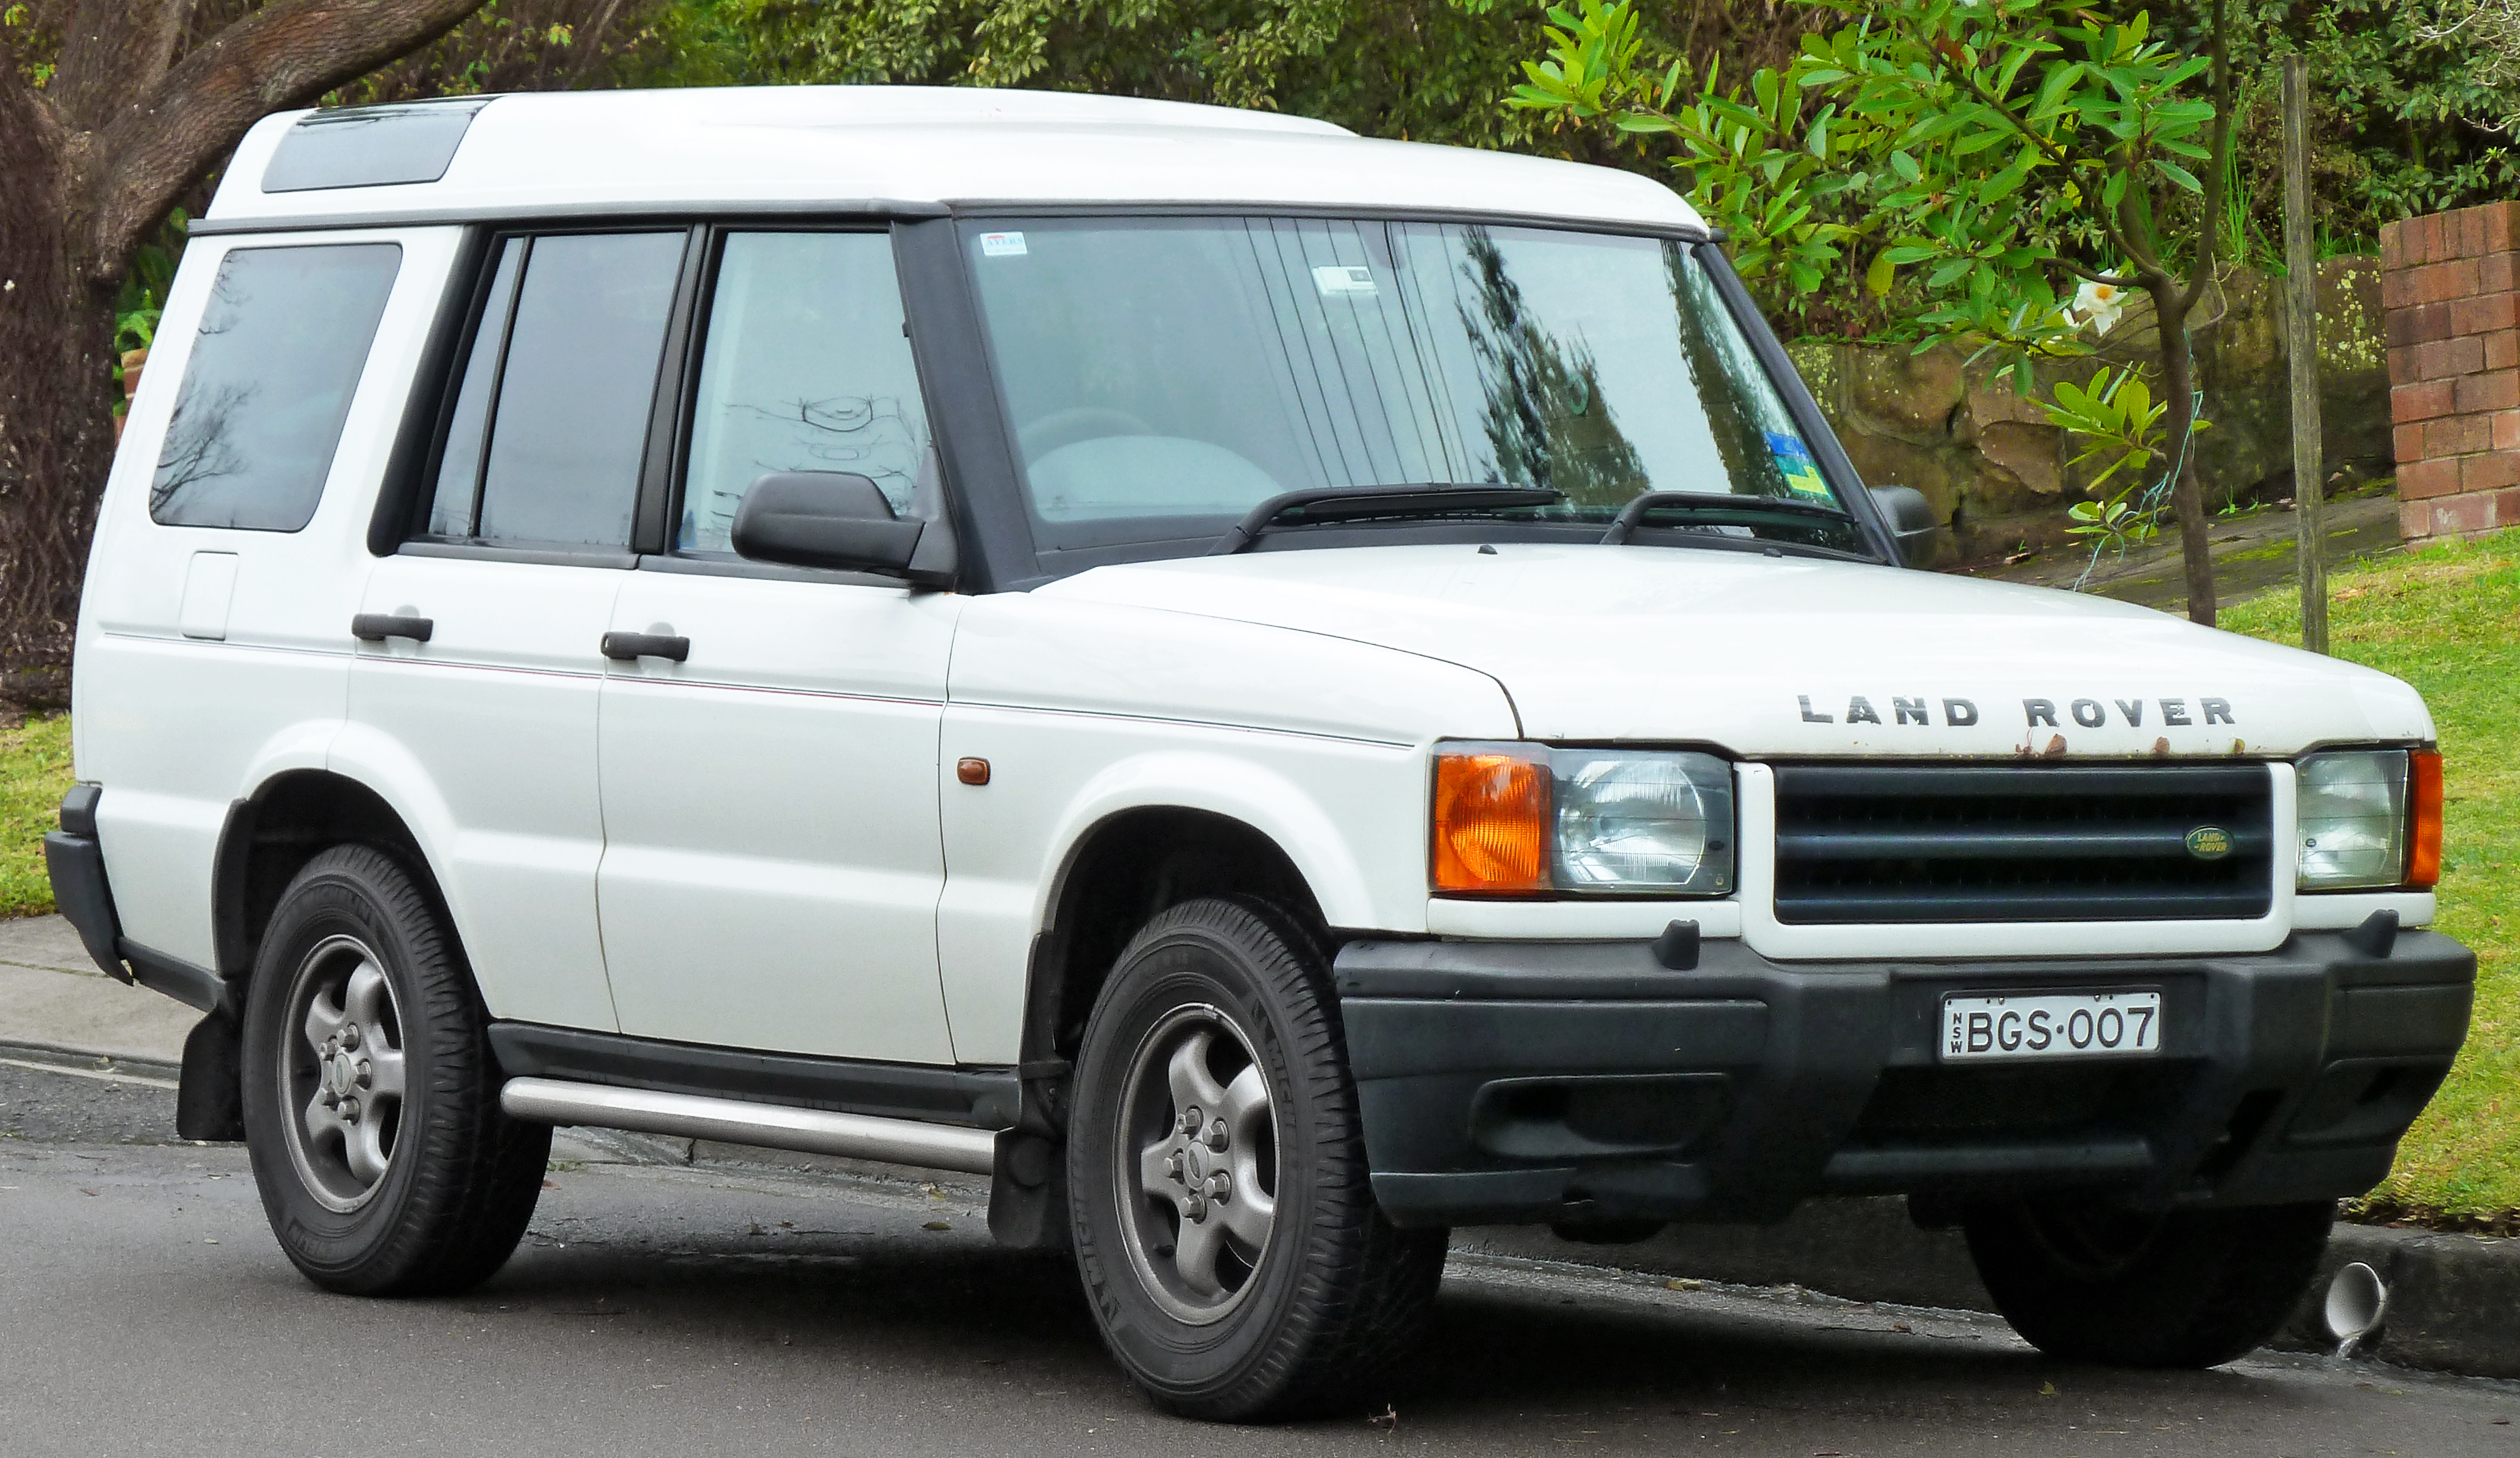 File:1999-2000 Land Rover Discovery II Td5 5-door wagon (2011-06-15